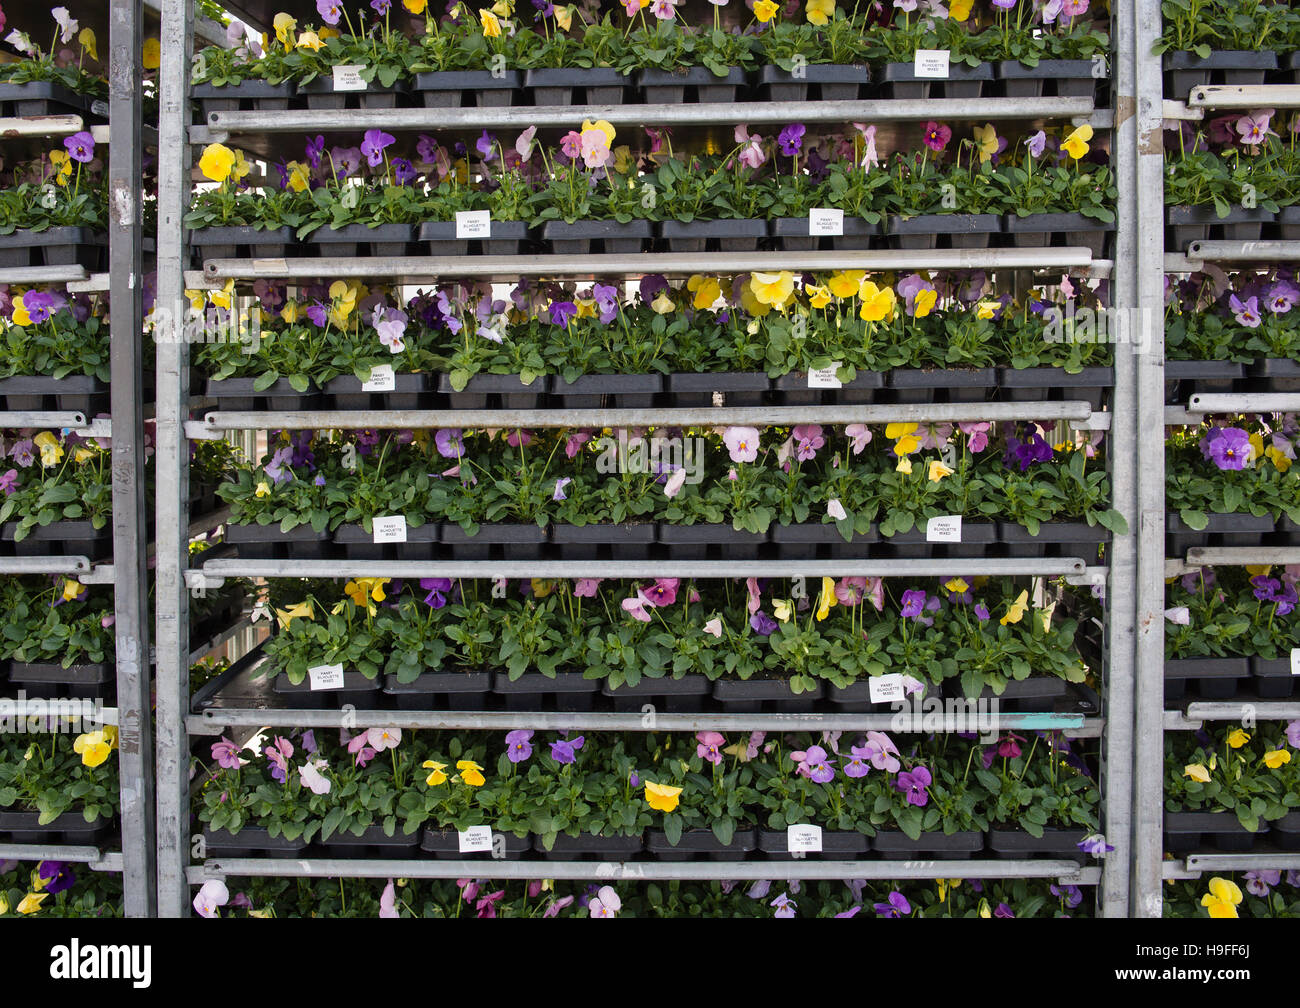 Pansies for use in landscaping public spaces. - Stock Image